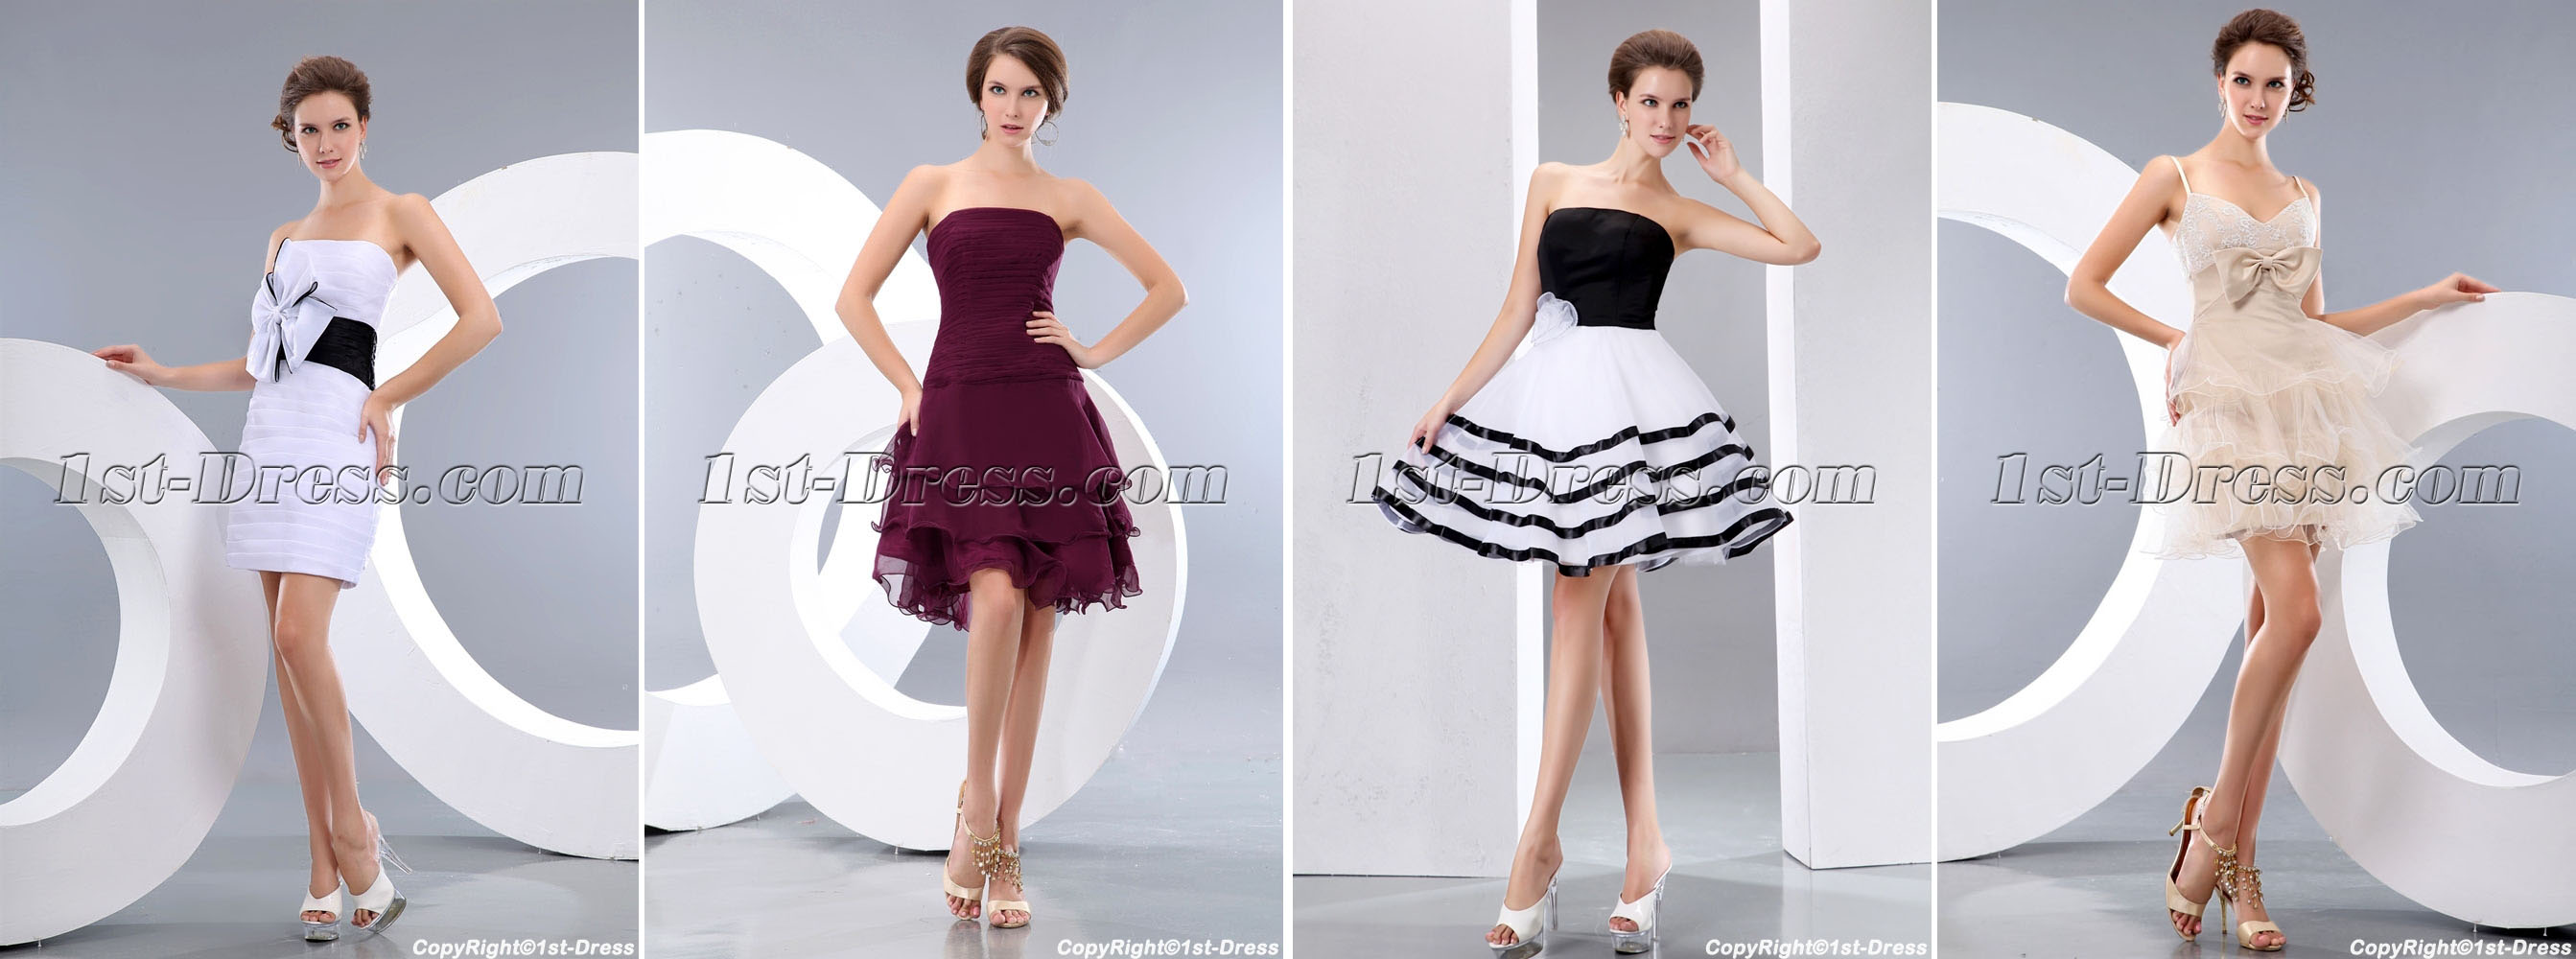 Terrific-White-and-Black-Organza-Mini-Short-Prom-Gowns-4163-b-1-1389977661